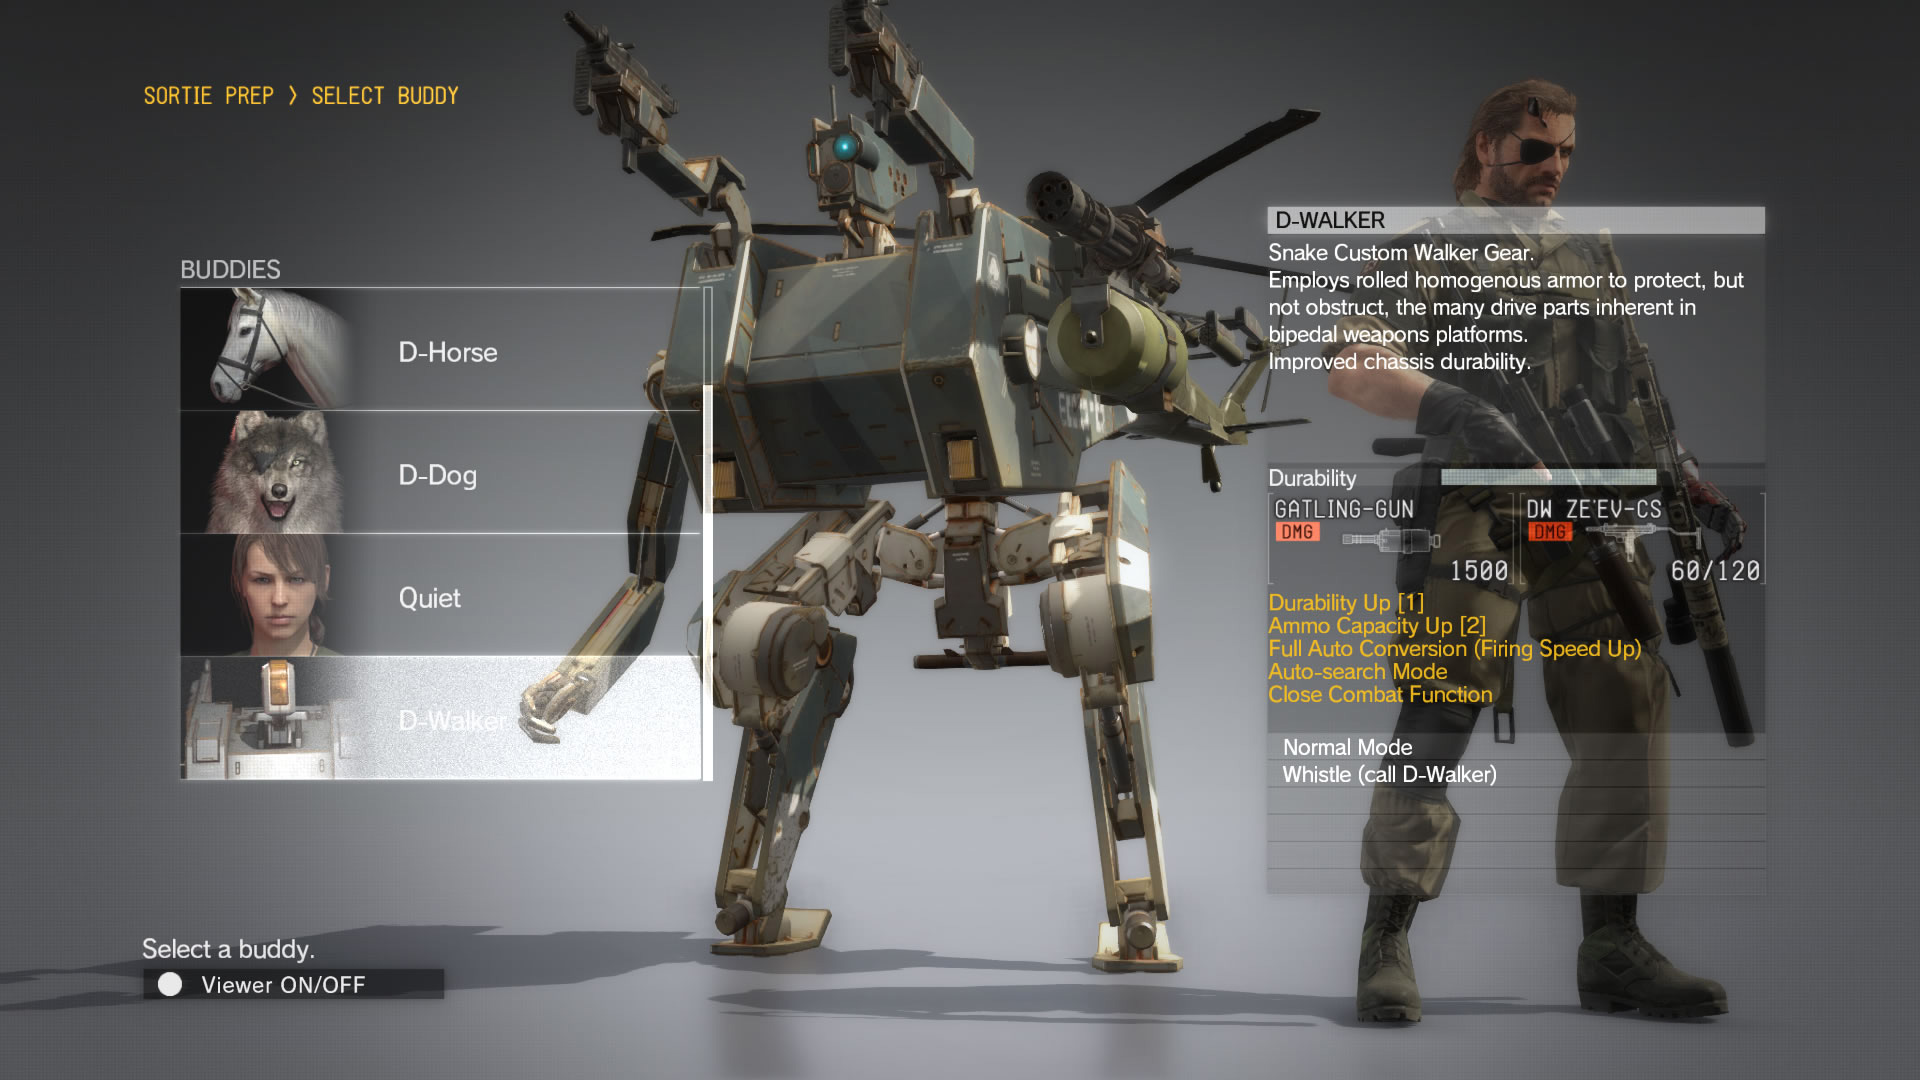 Metal-Gear-Solid-V-The-Phantom-Pain-E3-2015-Screen-Mission-Prep-D-Walker